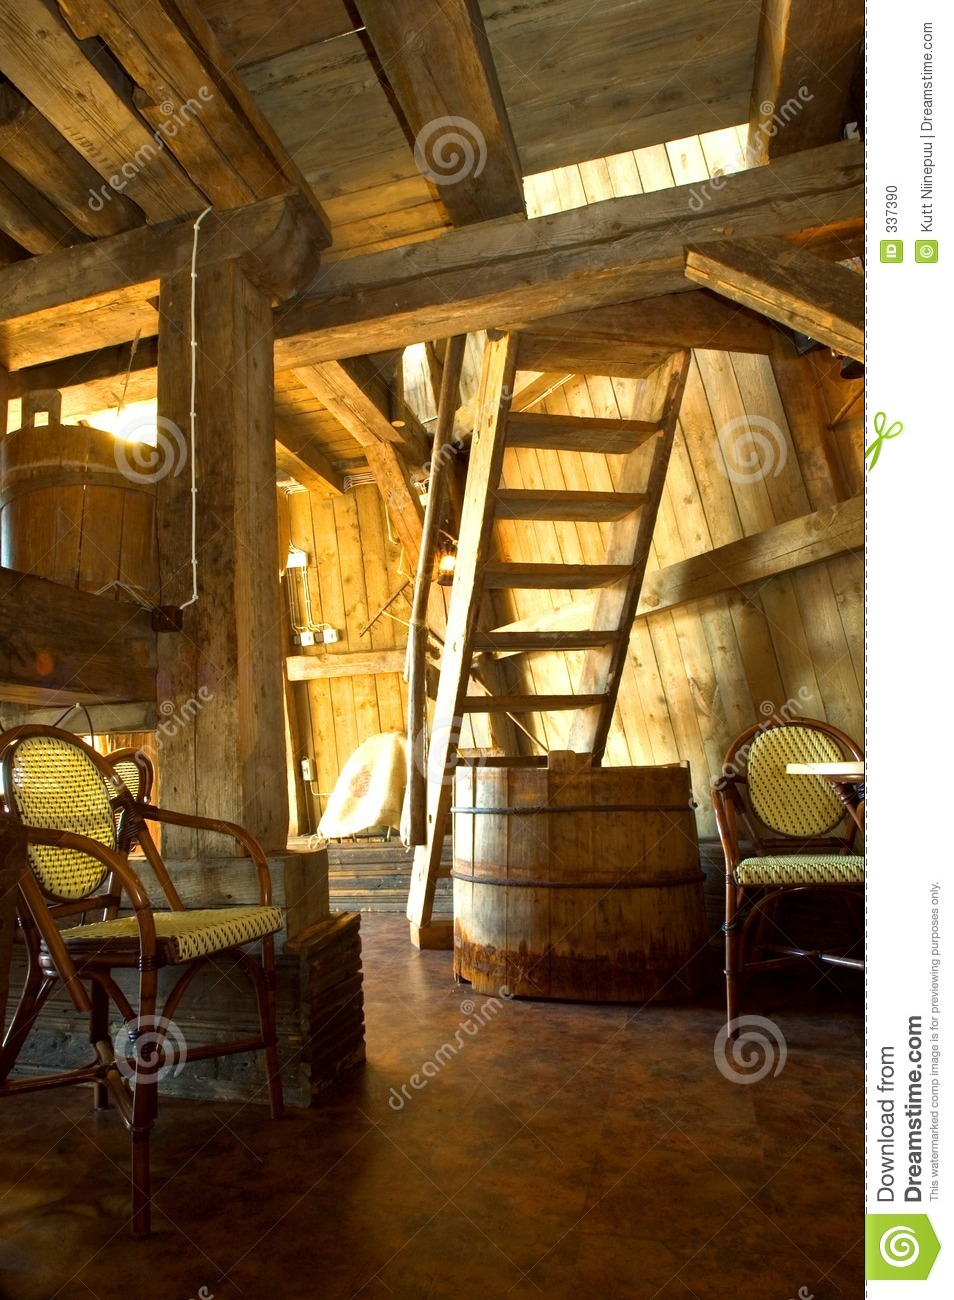 Old windmill interior stock photo Image of stairs background  337390